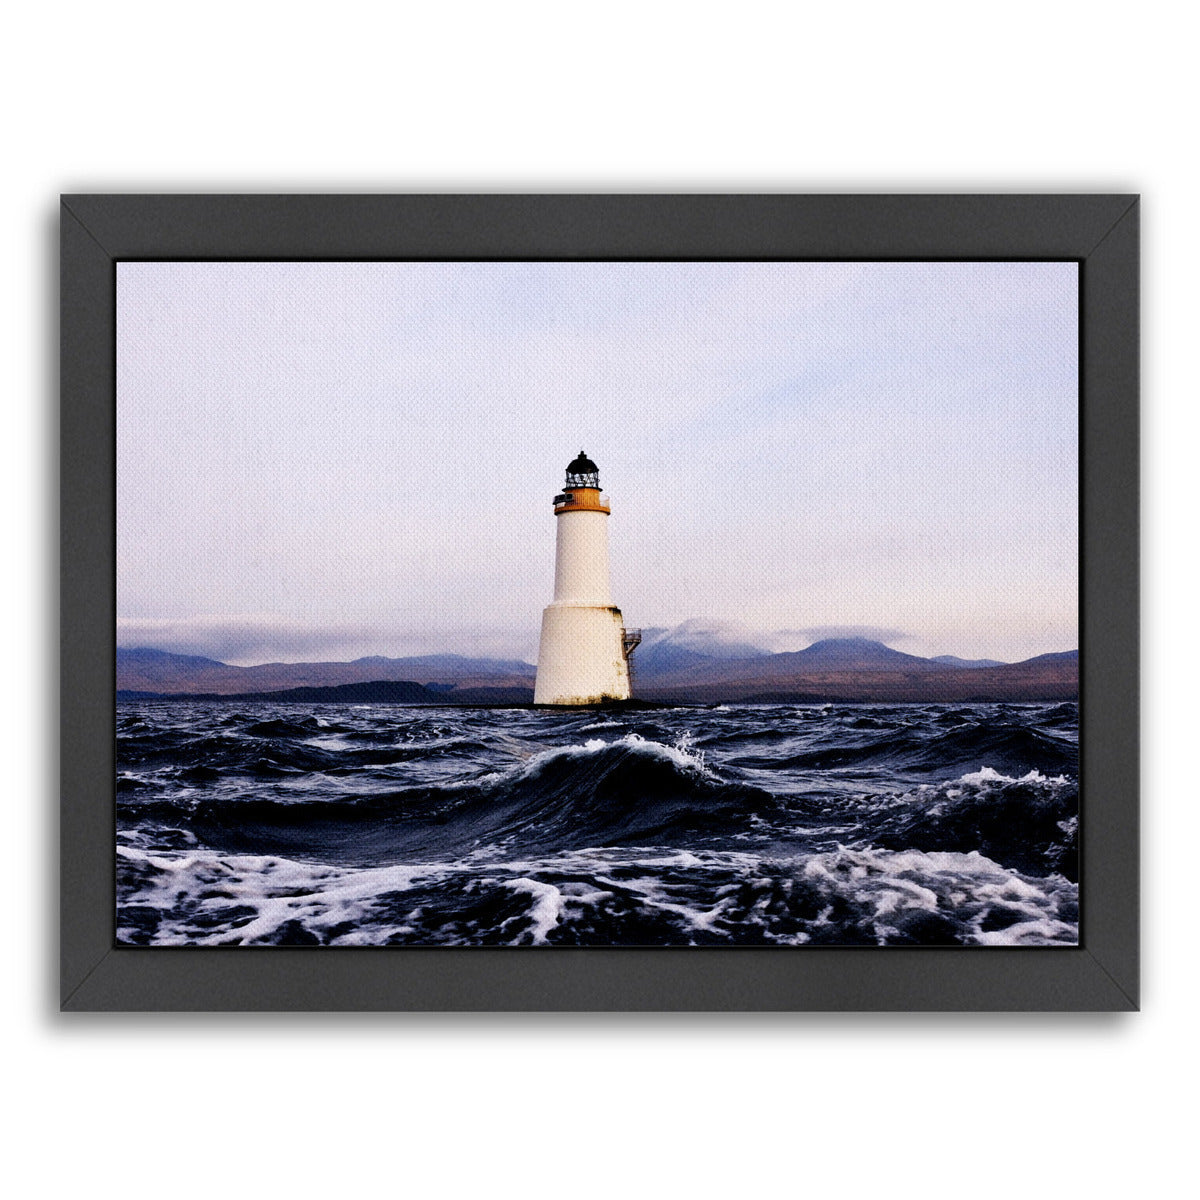 Lighthouse 2 By Nuada - Black Framed Print - Wall Art - Americanflat